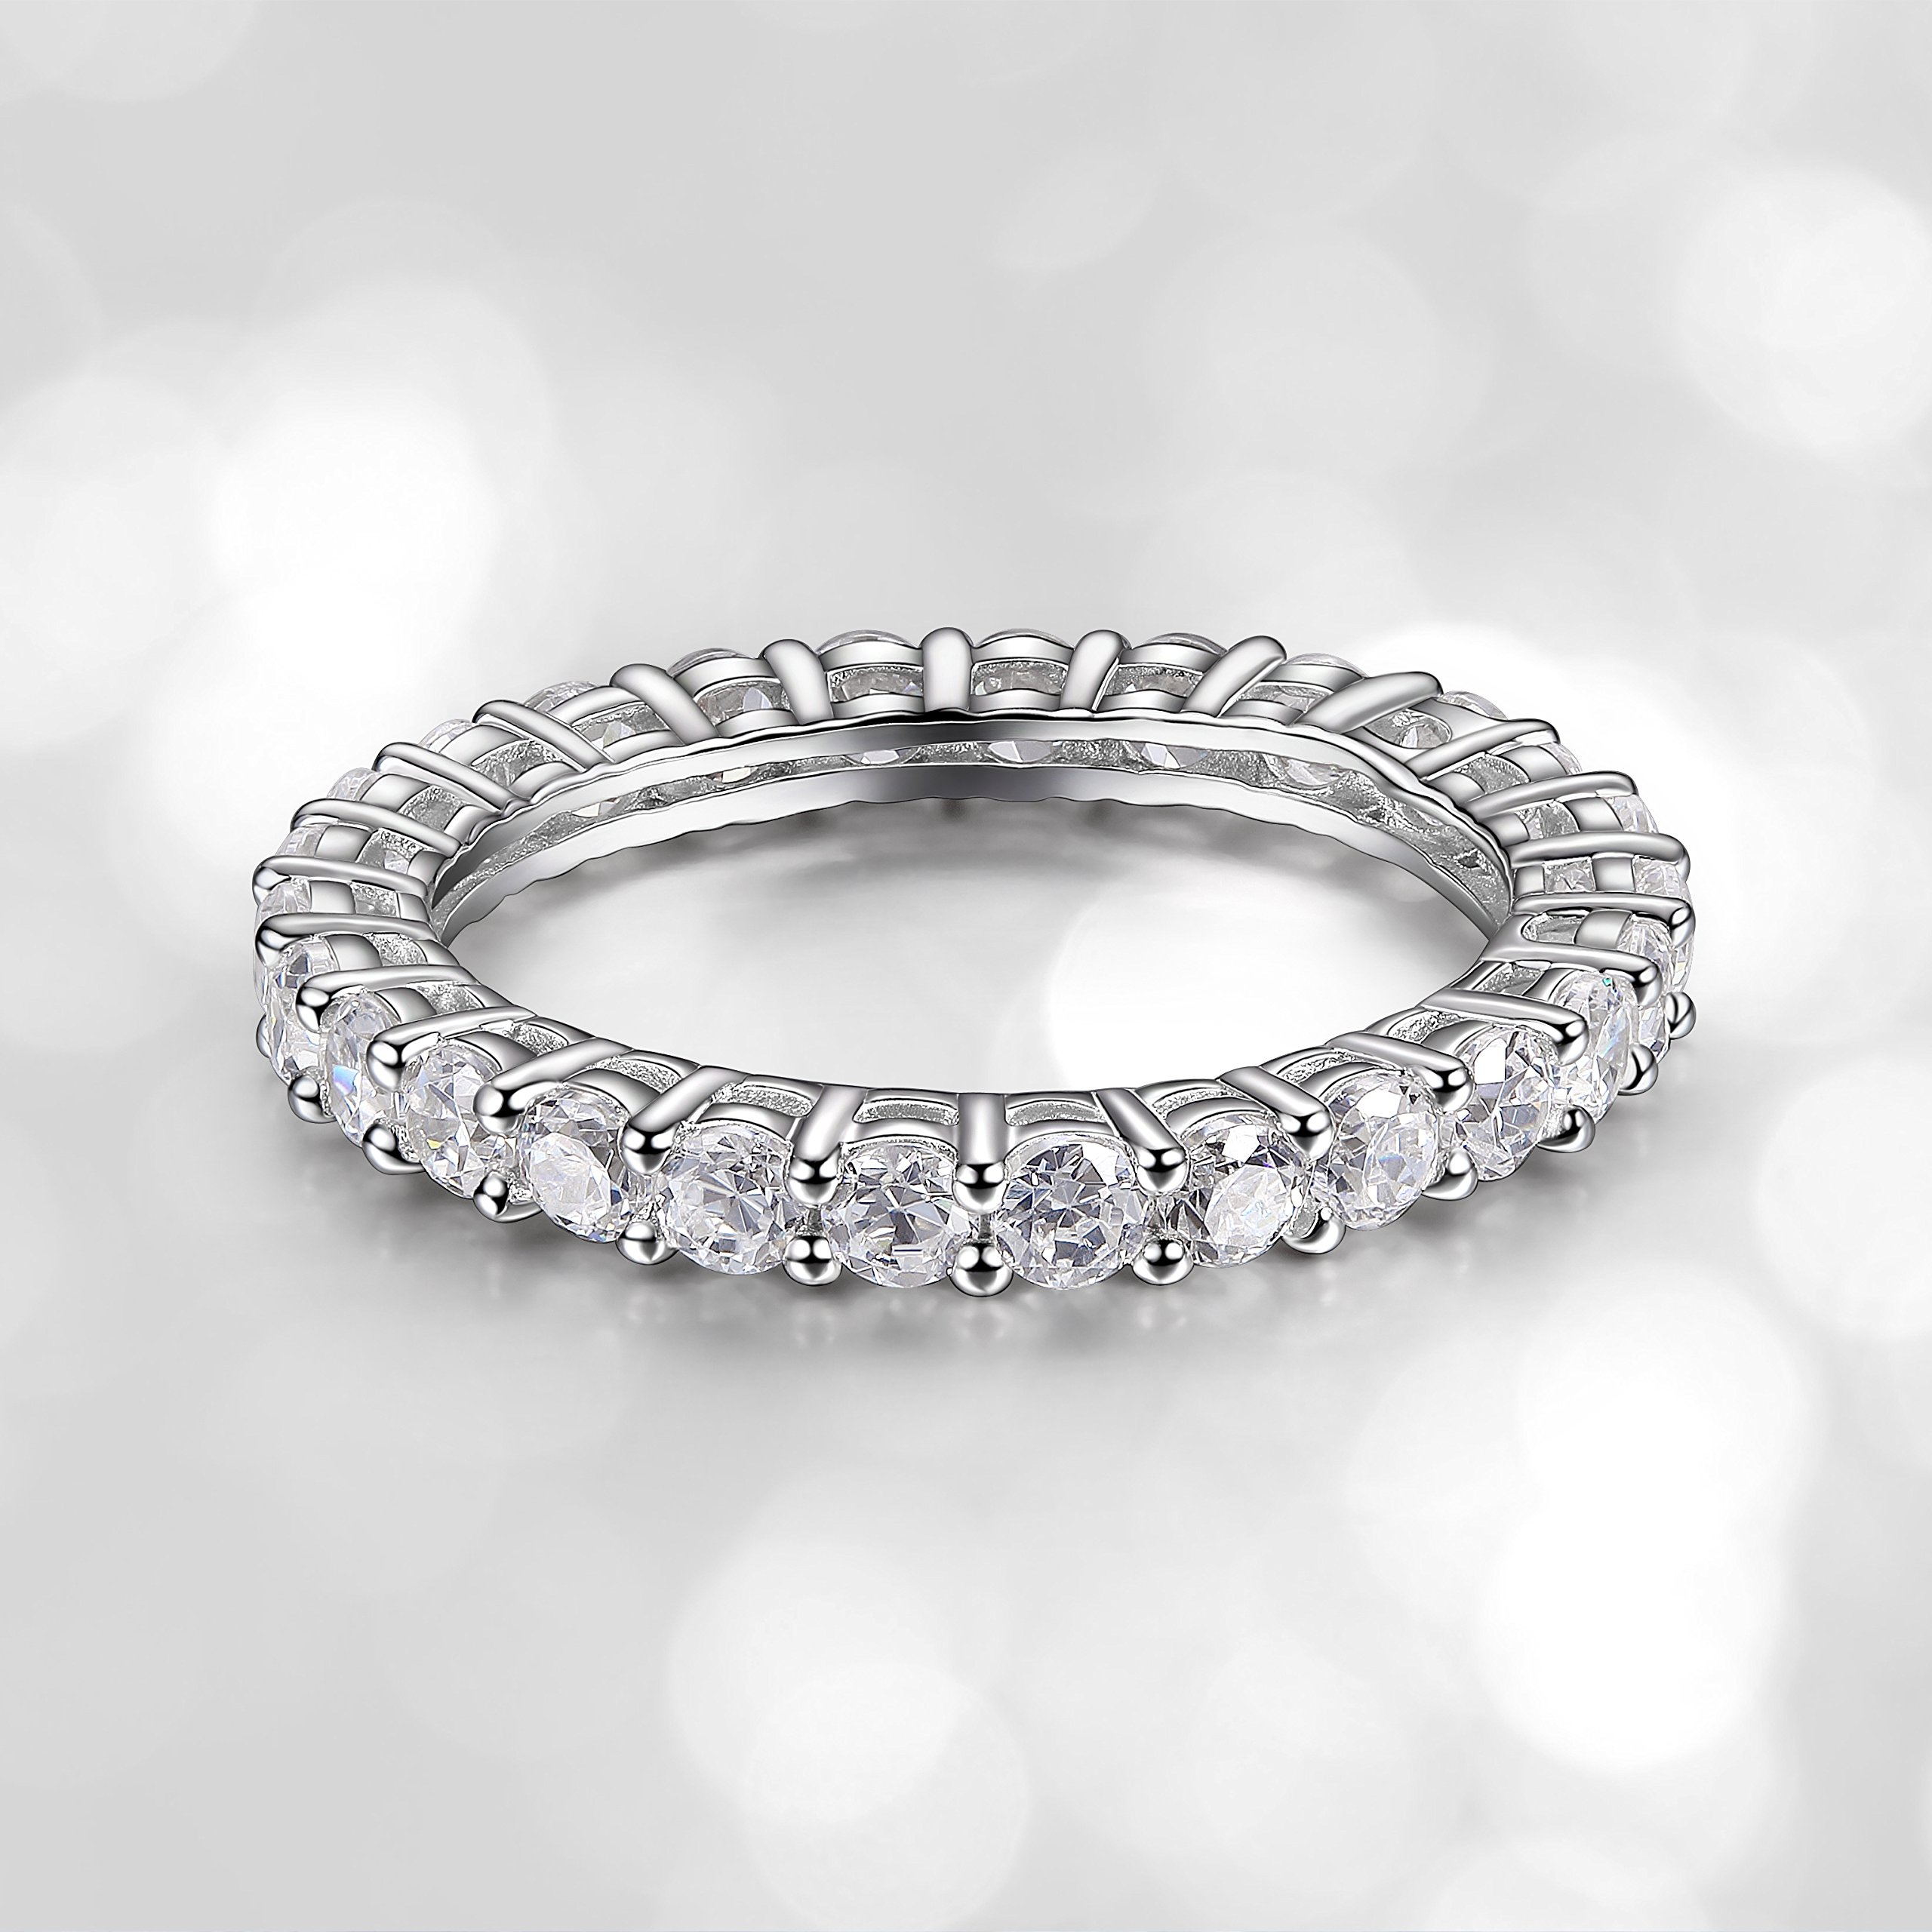 Platinum Plated Sterling Silver Cubic Zirconia Eternity Band Ring, Size 6